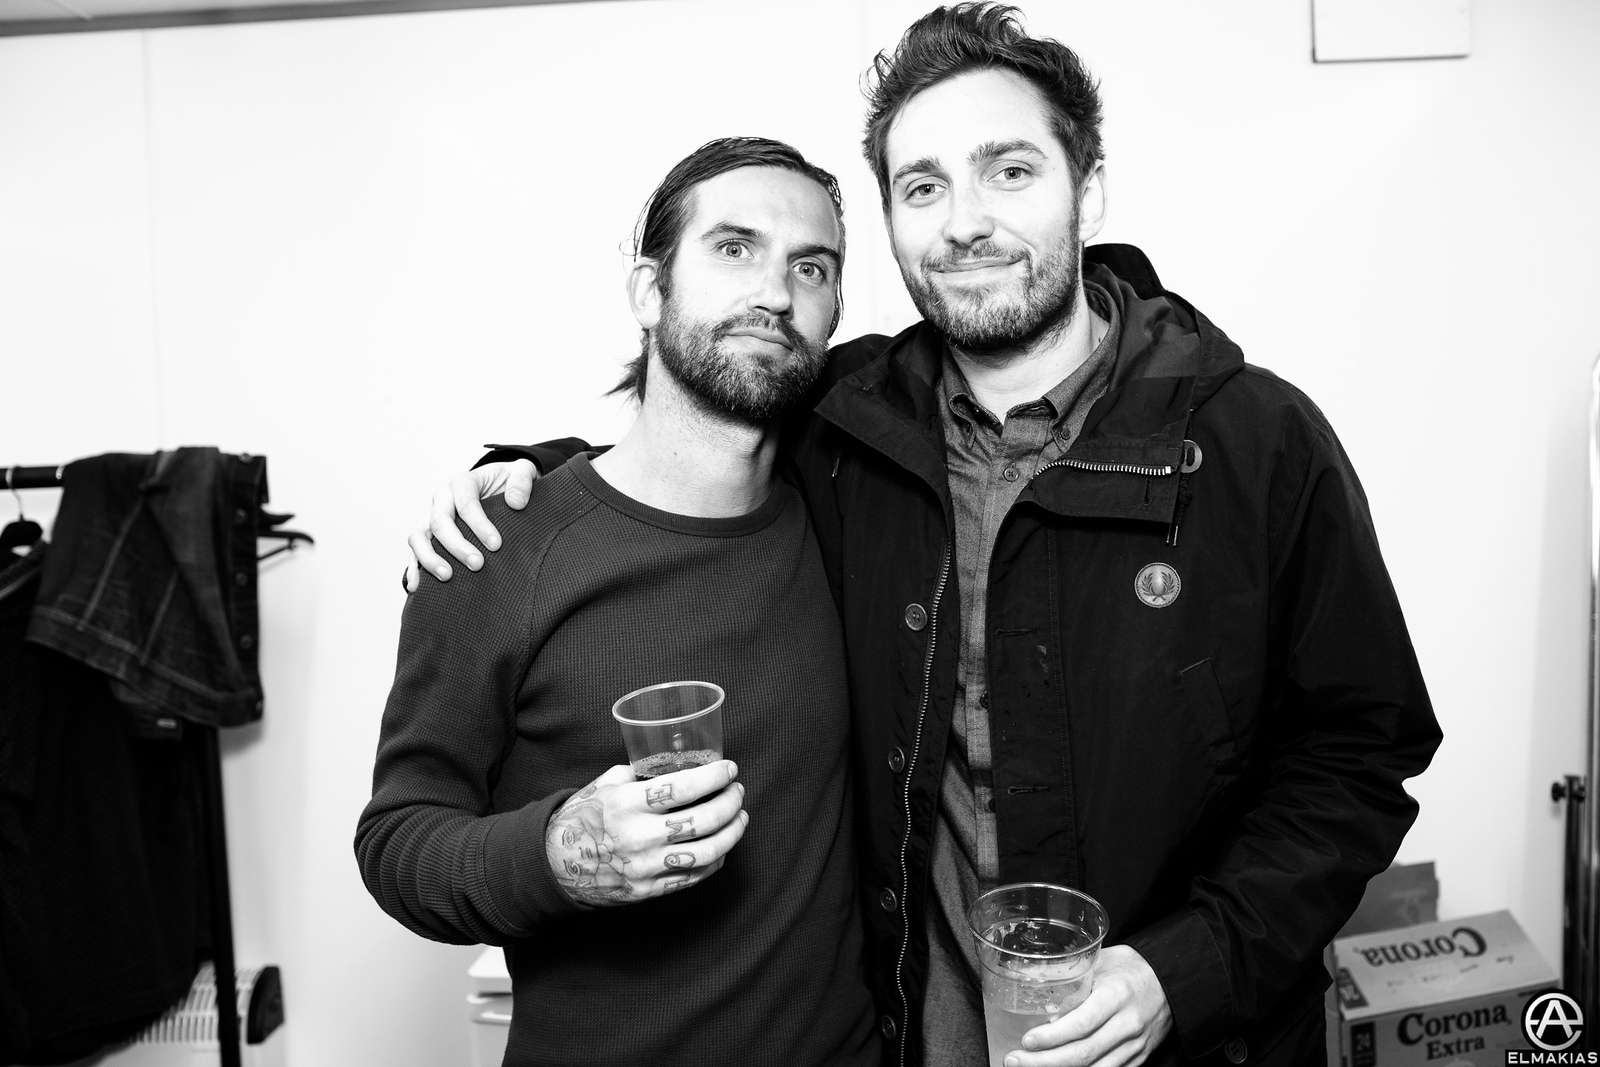 Keith Buckley of Everytime I Die and Josh Franceschi of You Me At Six, backstage at Reading Festival